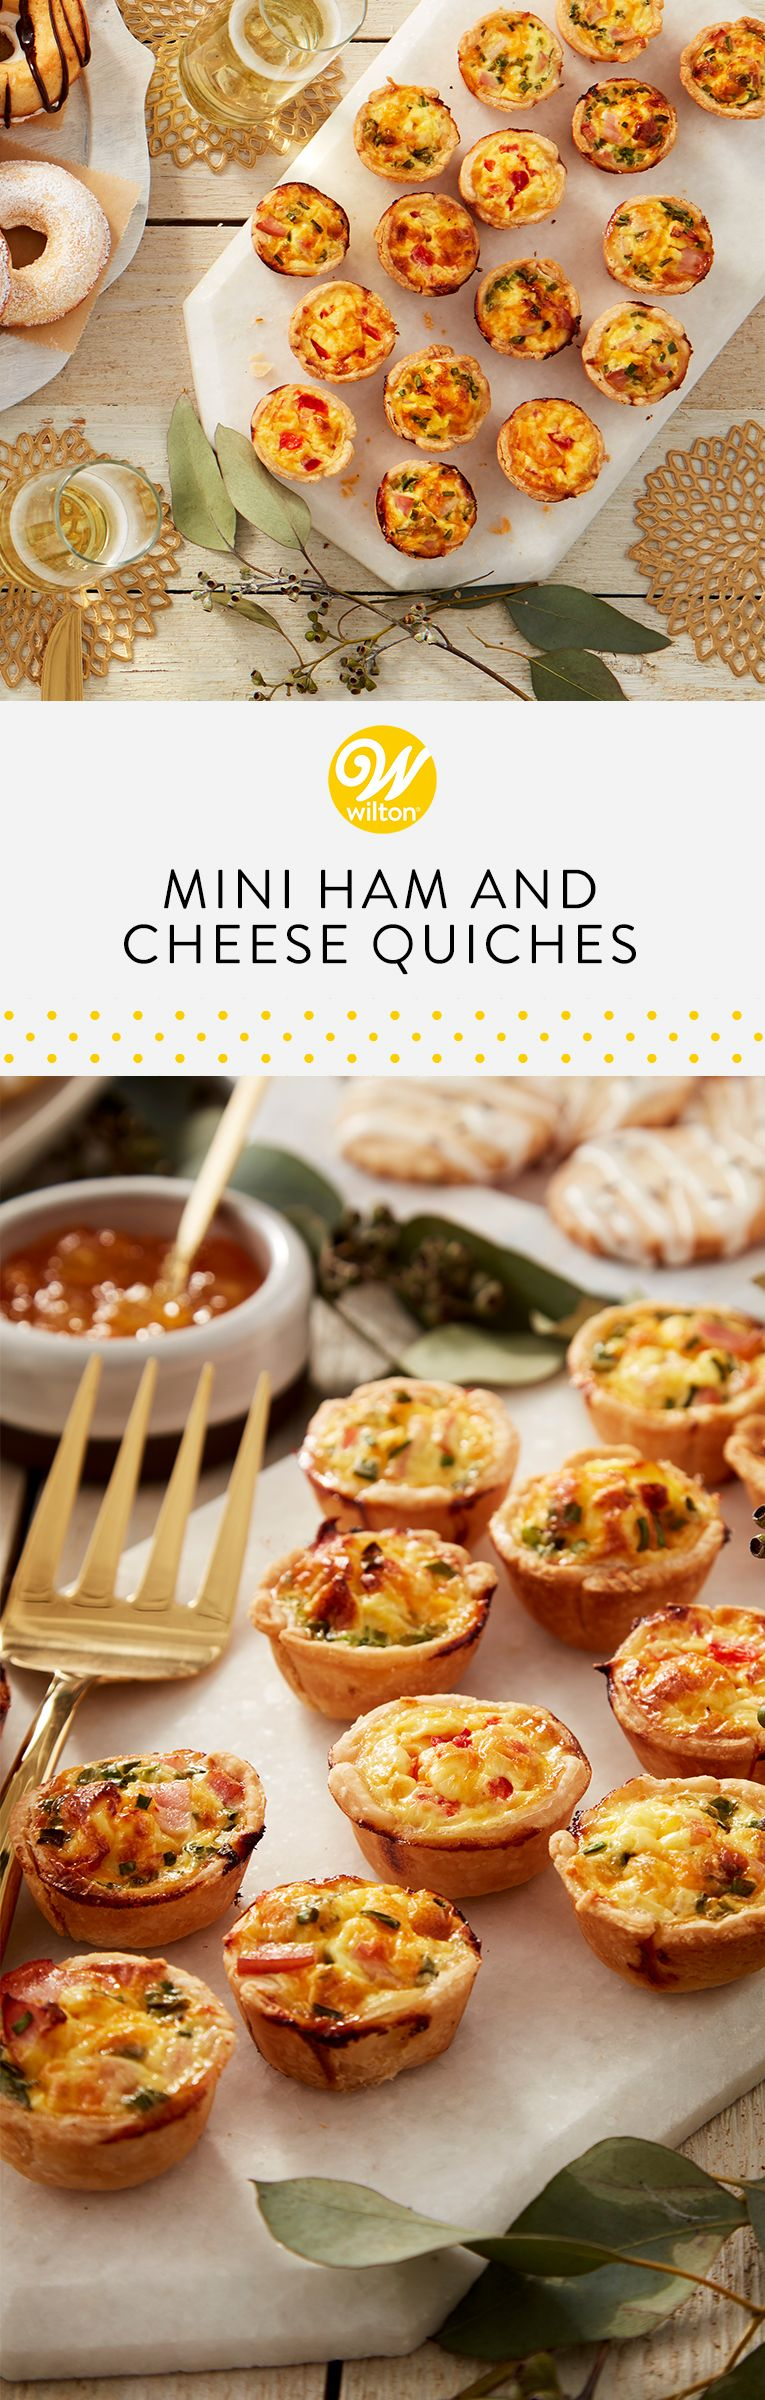 Photo of Mini Ham and Cheese Quiches